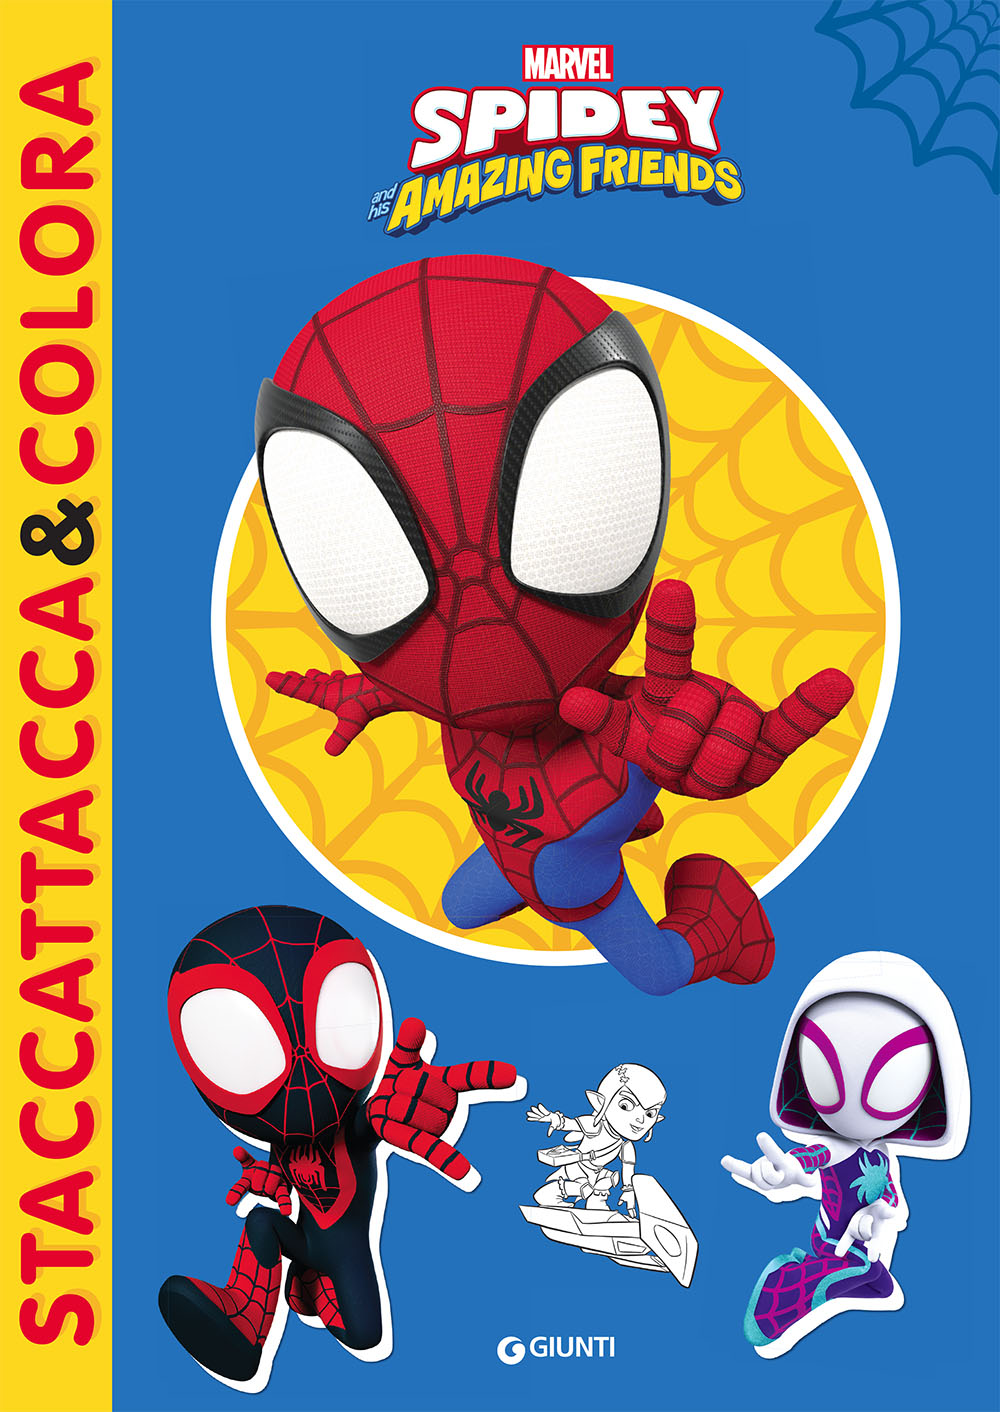 Staccattacca&colora Marvel Spidey and his Amazing friends